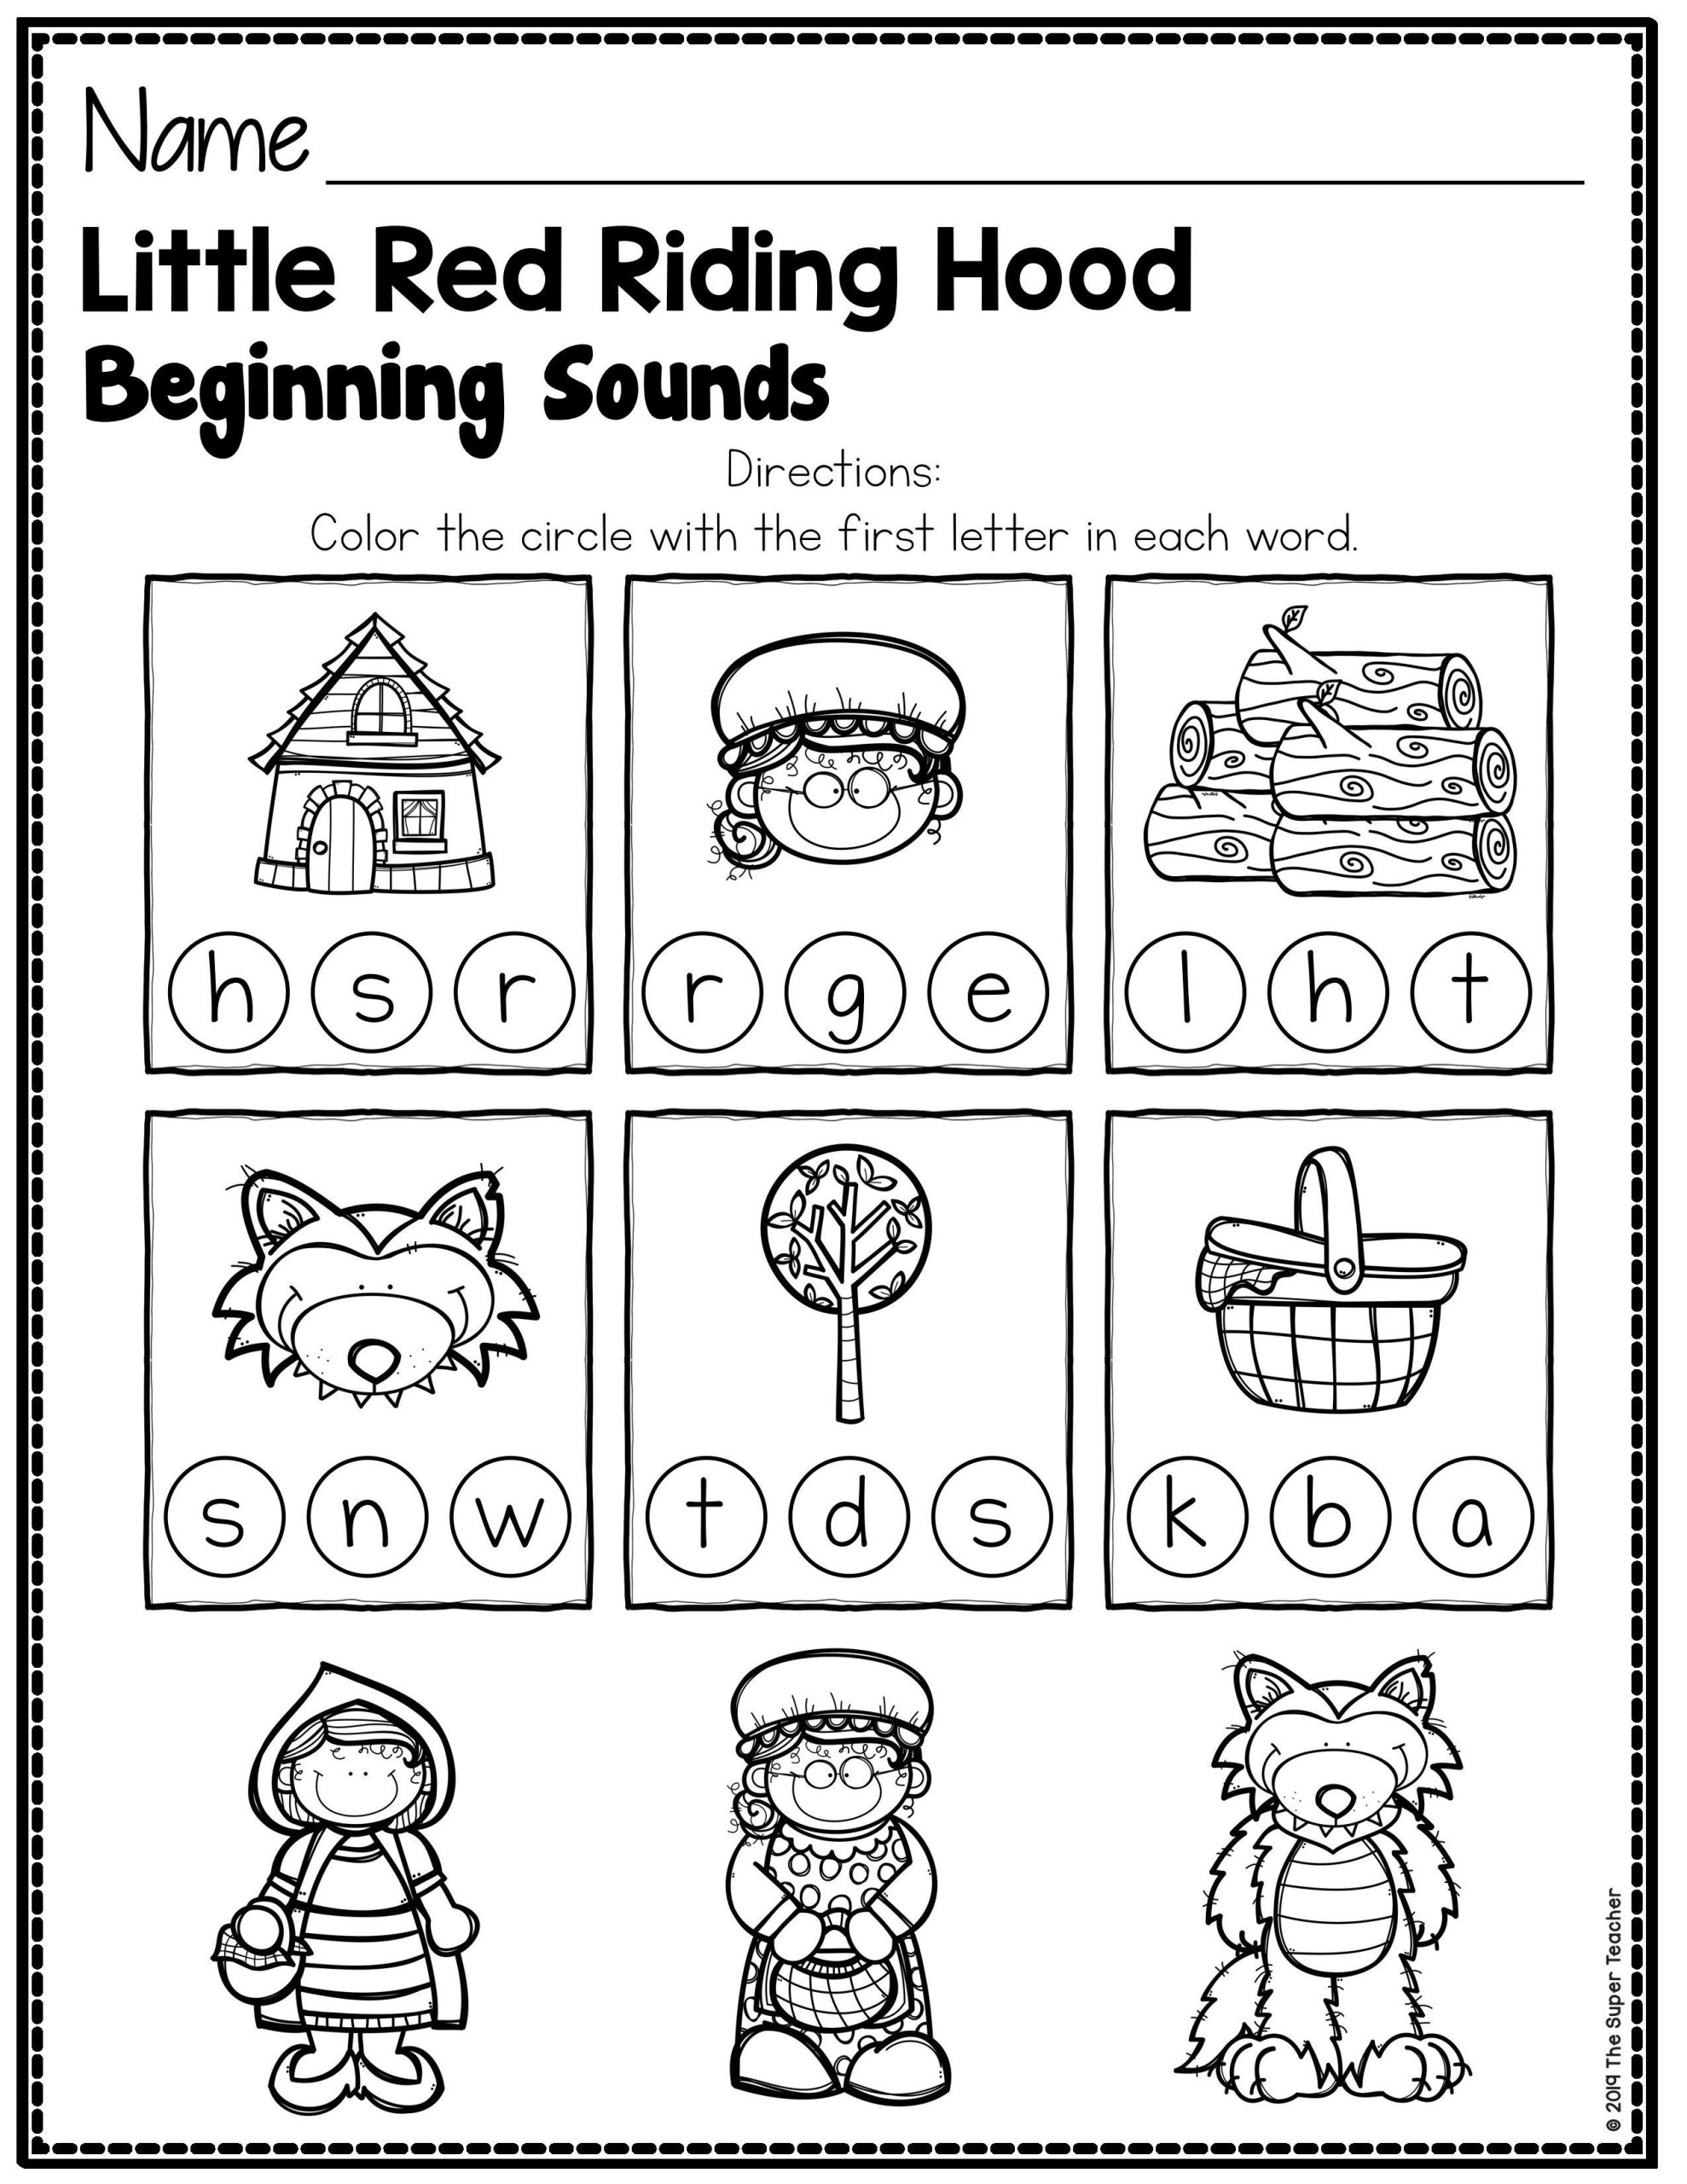 Phonics Worksheets 1st Grade 1st Grade Phonics Worksheets All About Worksheet